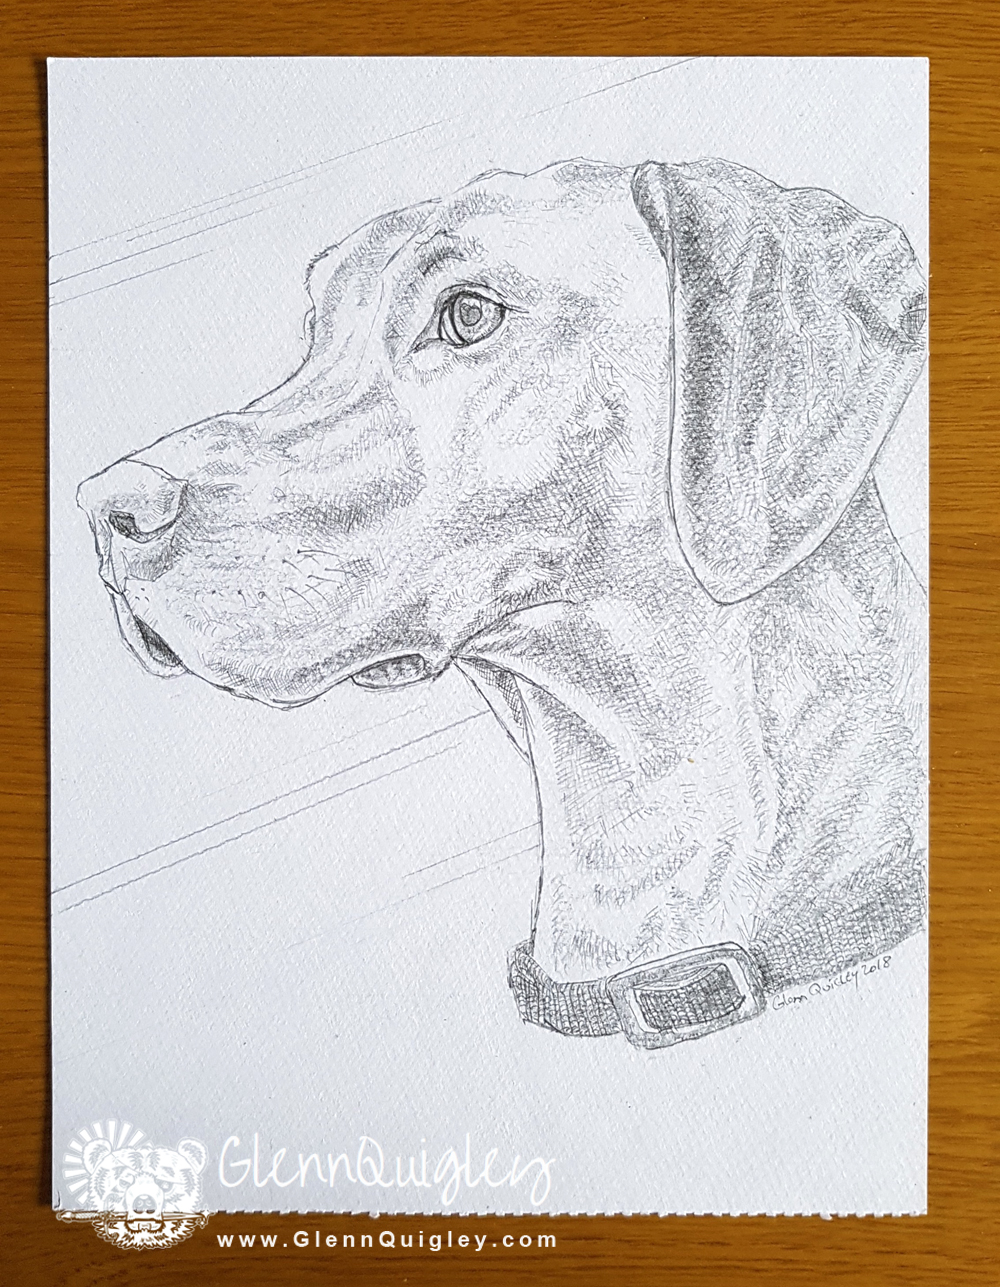 Pencil drawing of Willow by Glenn Quigley